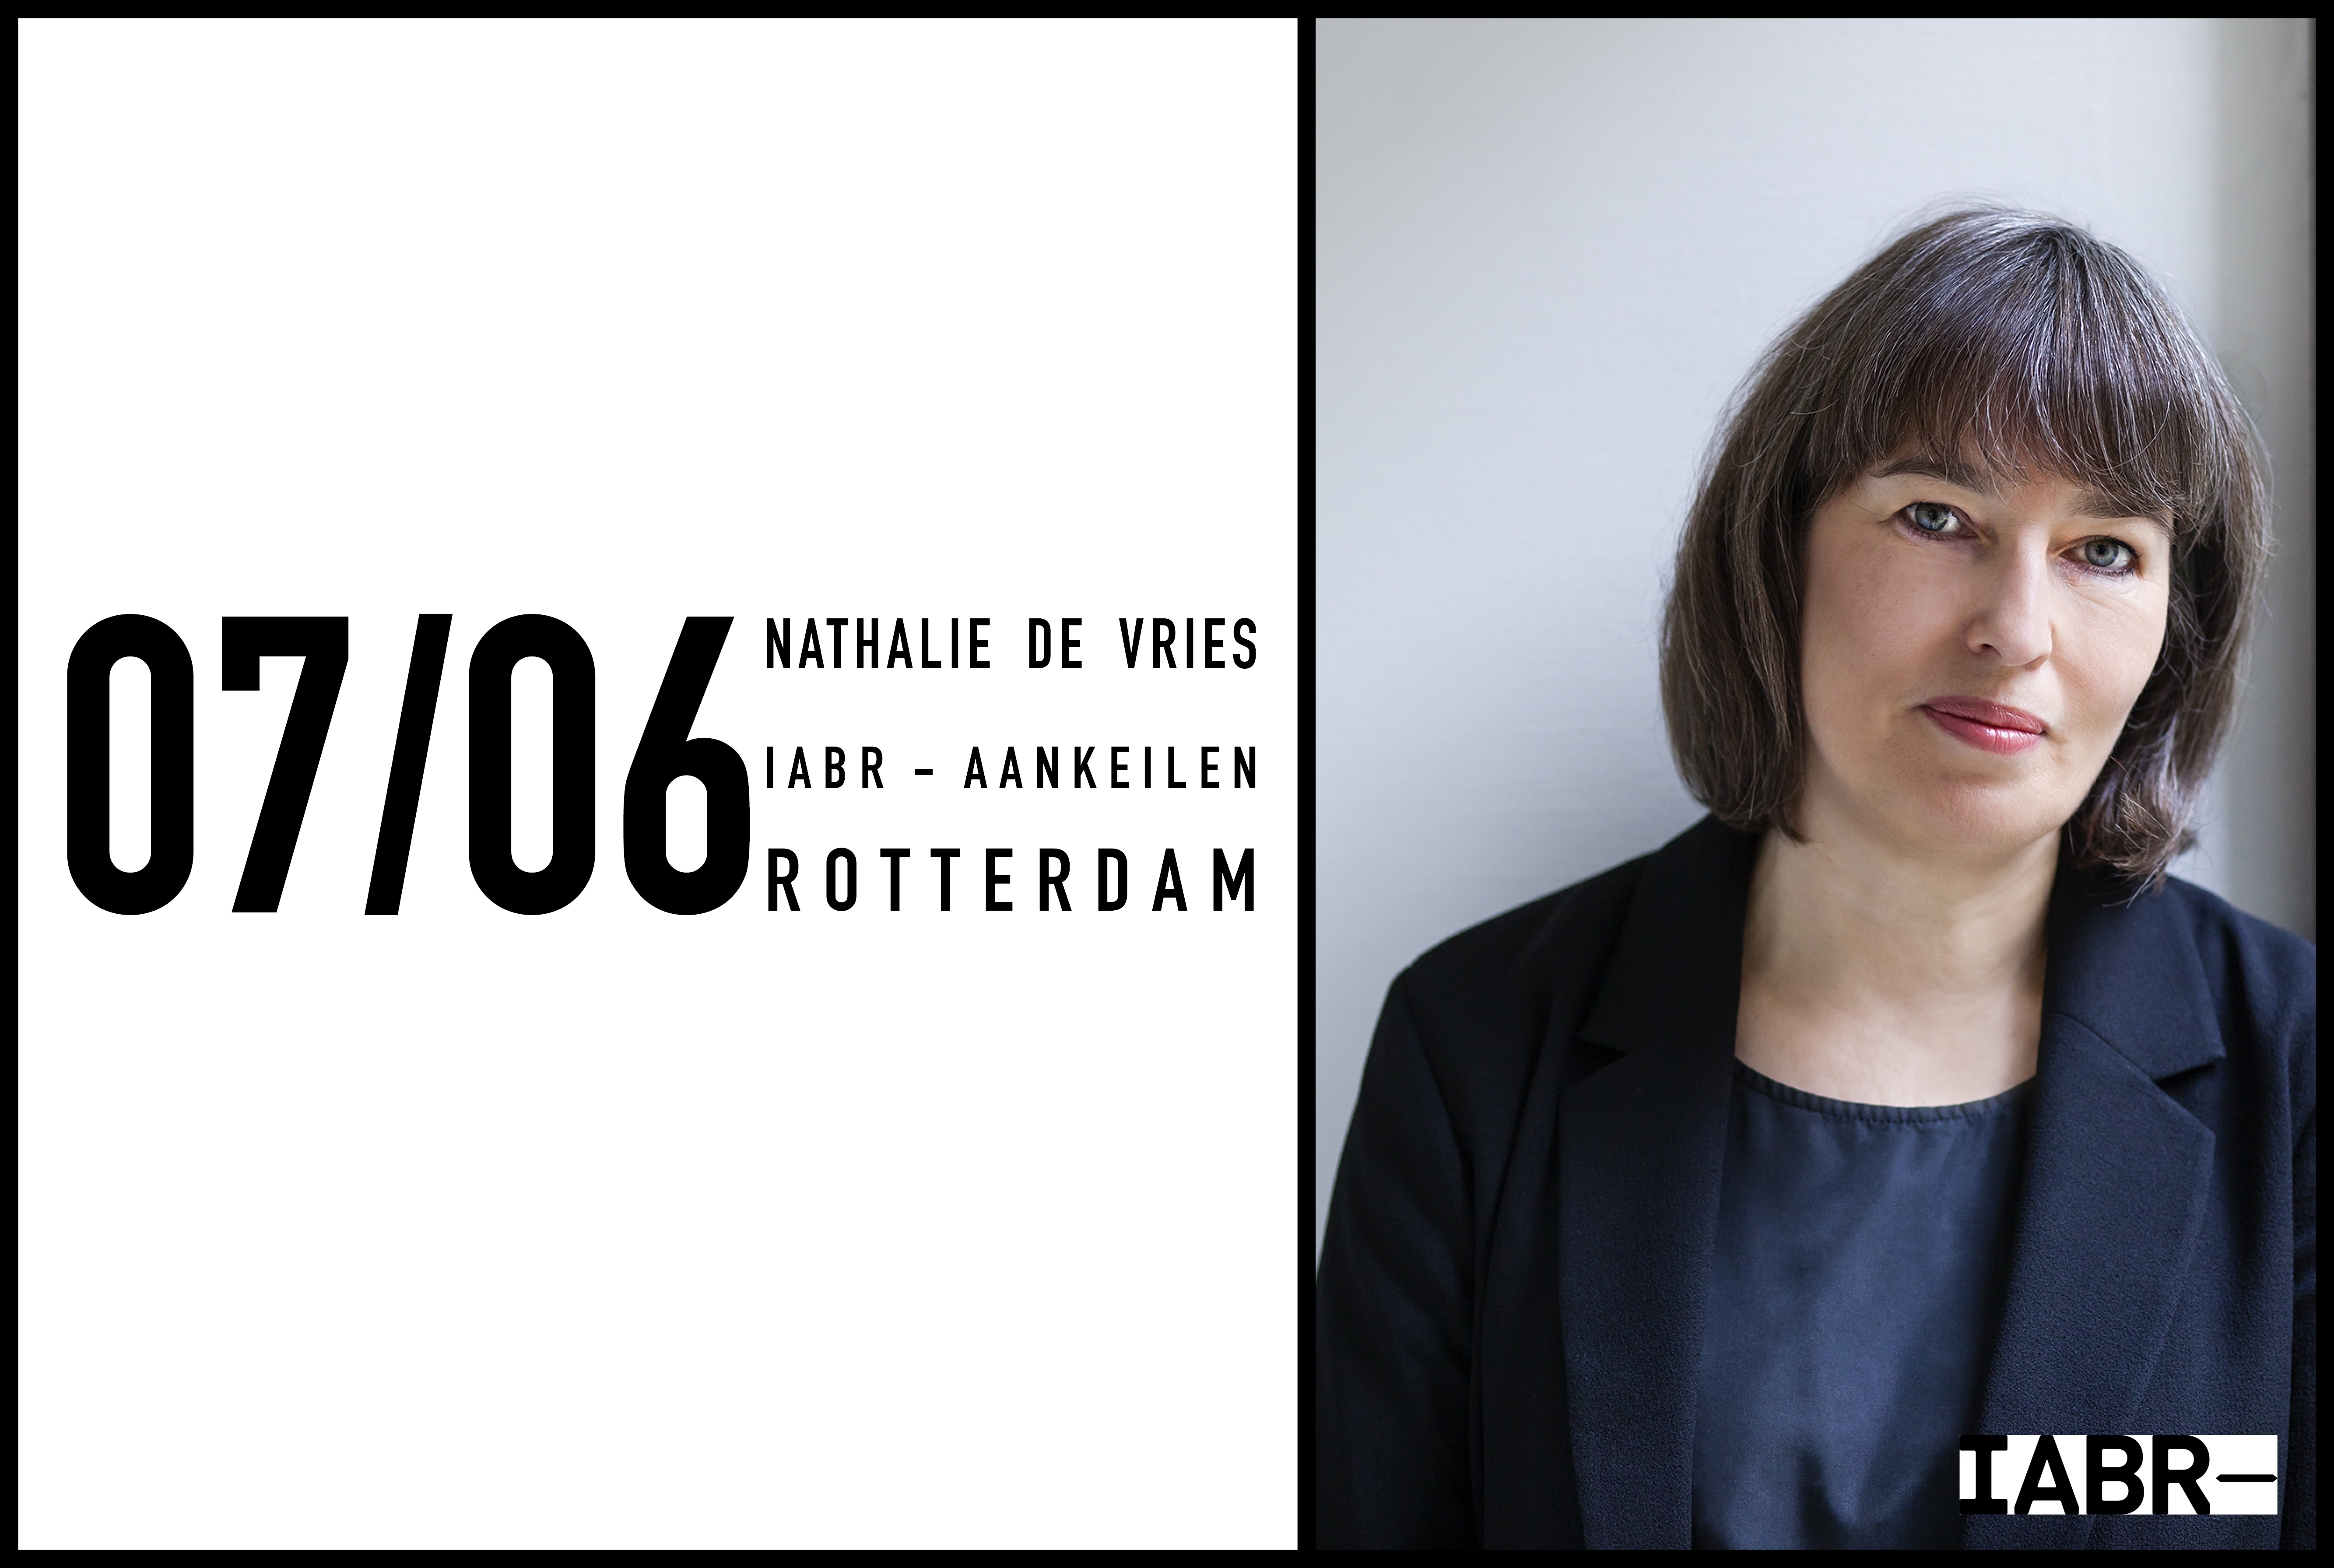 Nathalie de Vries to take part in table discussion at IABR